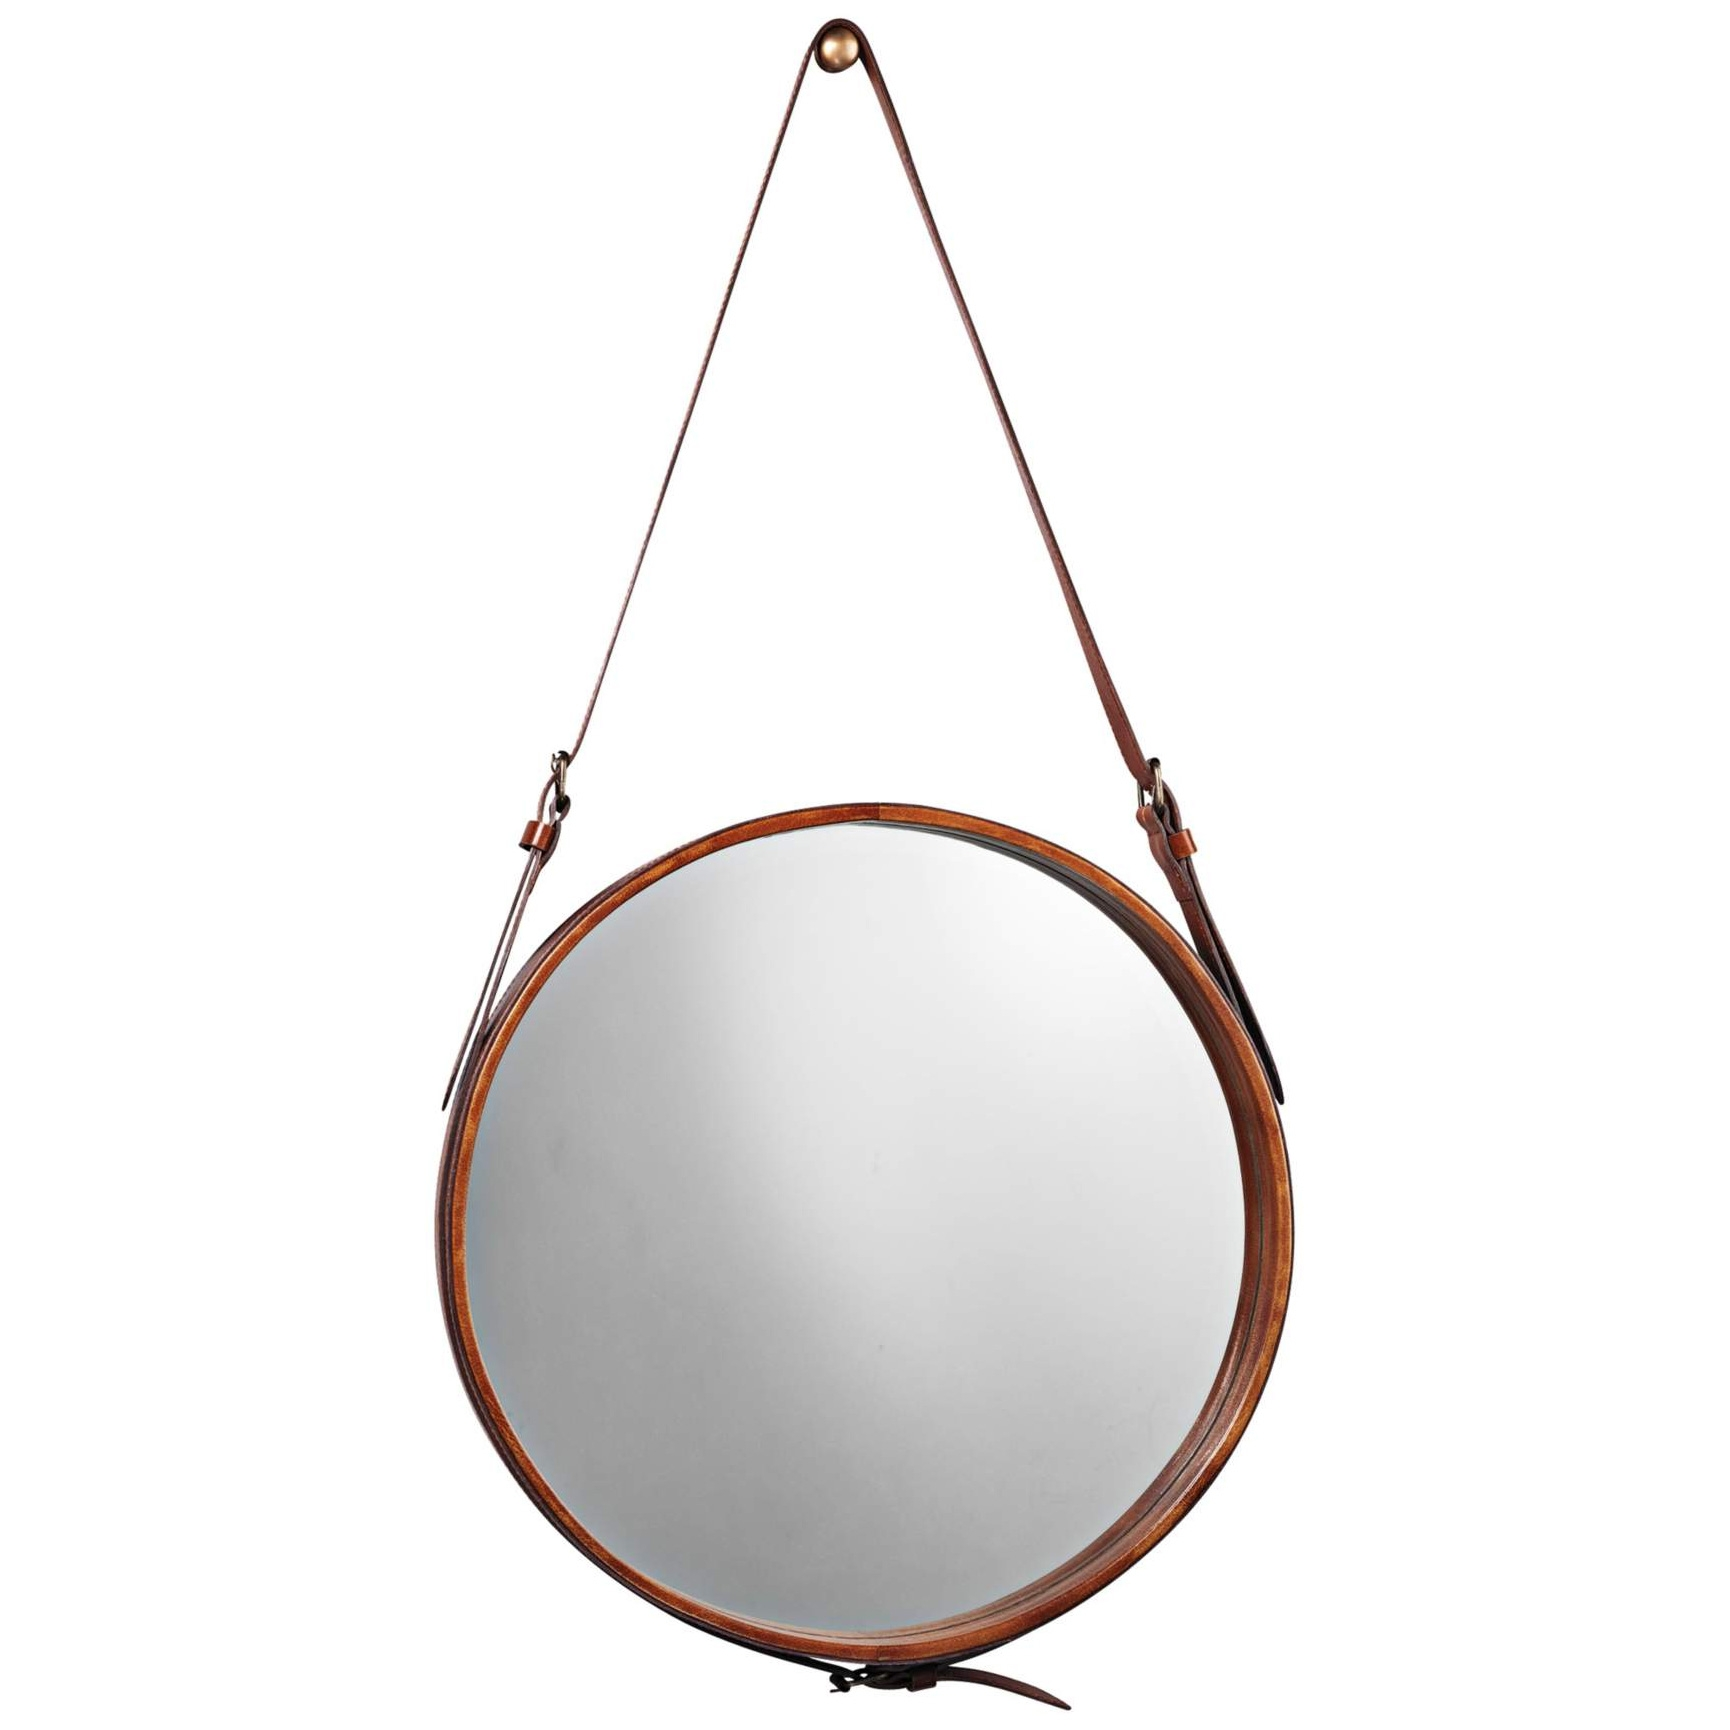 Leather Mirror Jamie Young Company 7roun Mibr Throughout Round Mirror Leather (Image 7 of 15)